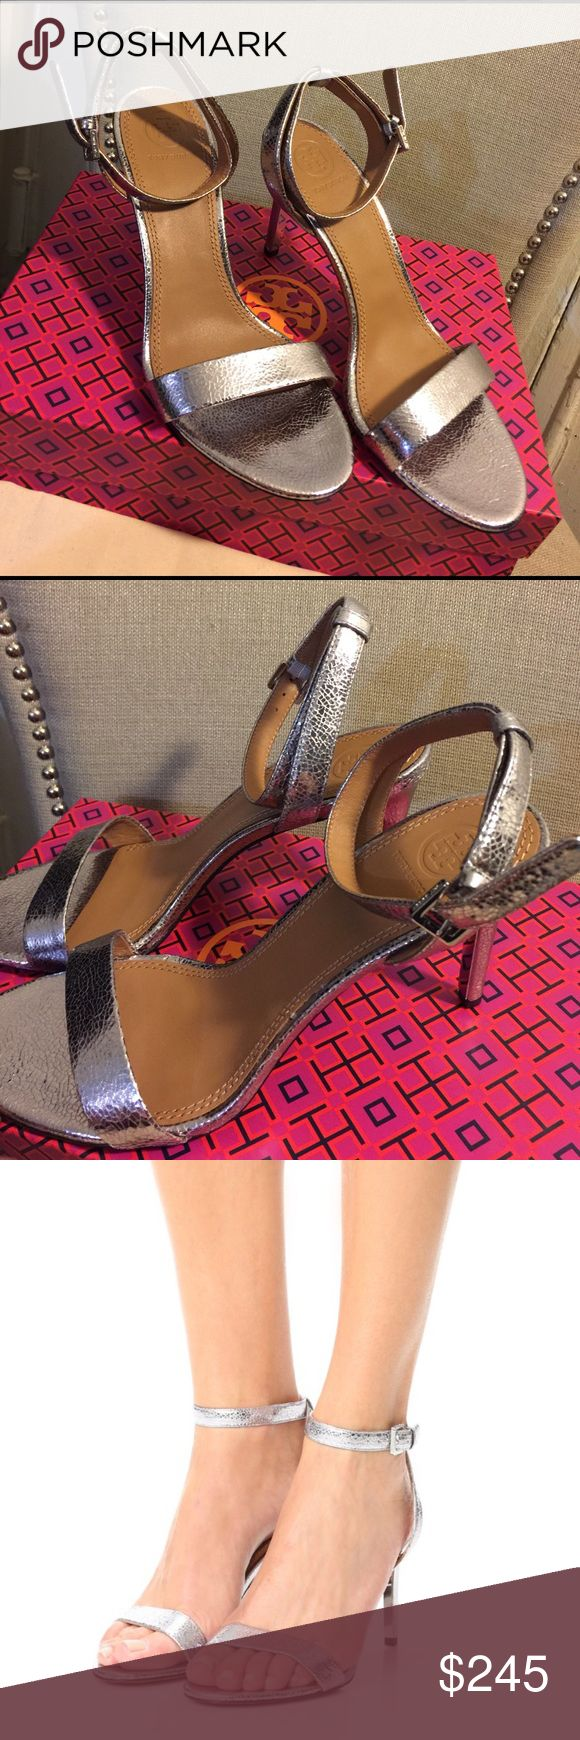 "NEW🎈 TORY BURCH PEWTER SANDAL 😑NO TRADES SORRY😑. Super stylish and feminine strappy sandal!   Pewter in color with wrap around ankle strap and 3.5"" heel.  Dazzle a crowd in the beautiful ensemble.  Size 8.  NEVER WORN  comes with box and dust bag too🎈. Don't let this get away Tory Burch Shoes Sandals"